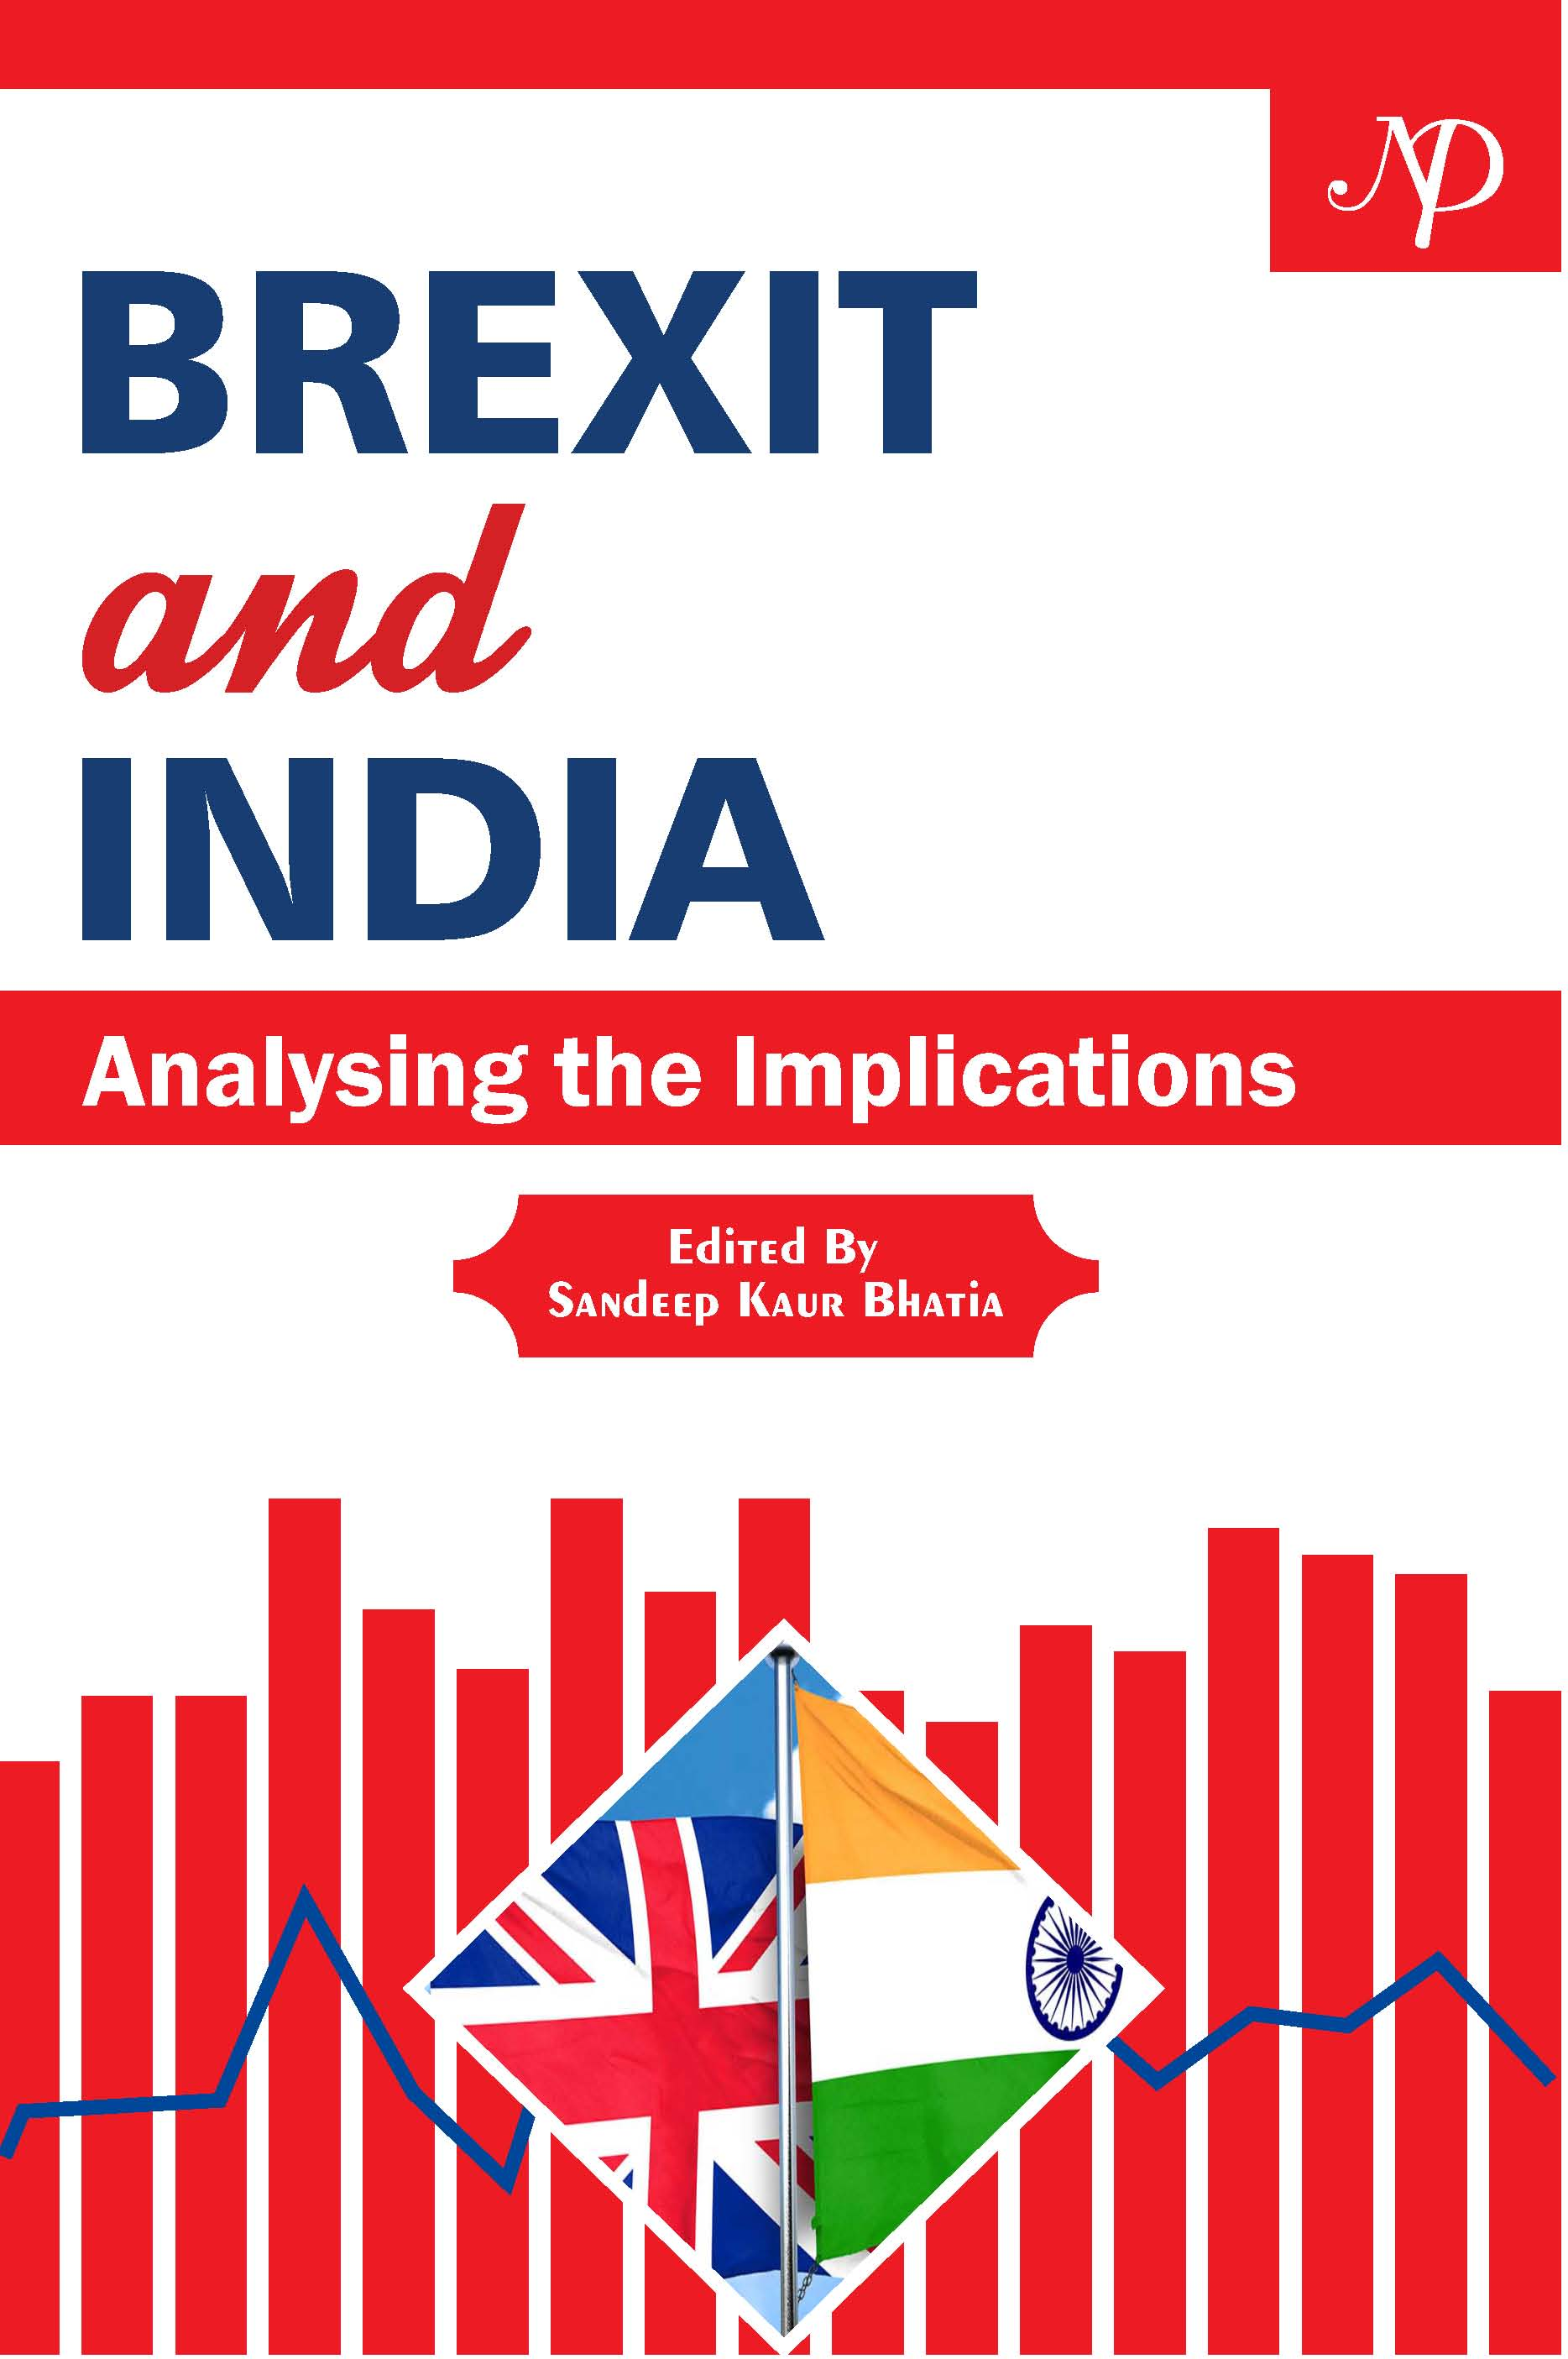 Brexit and India analysing the implications - Copy.jpg